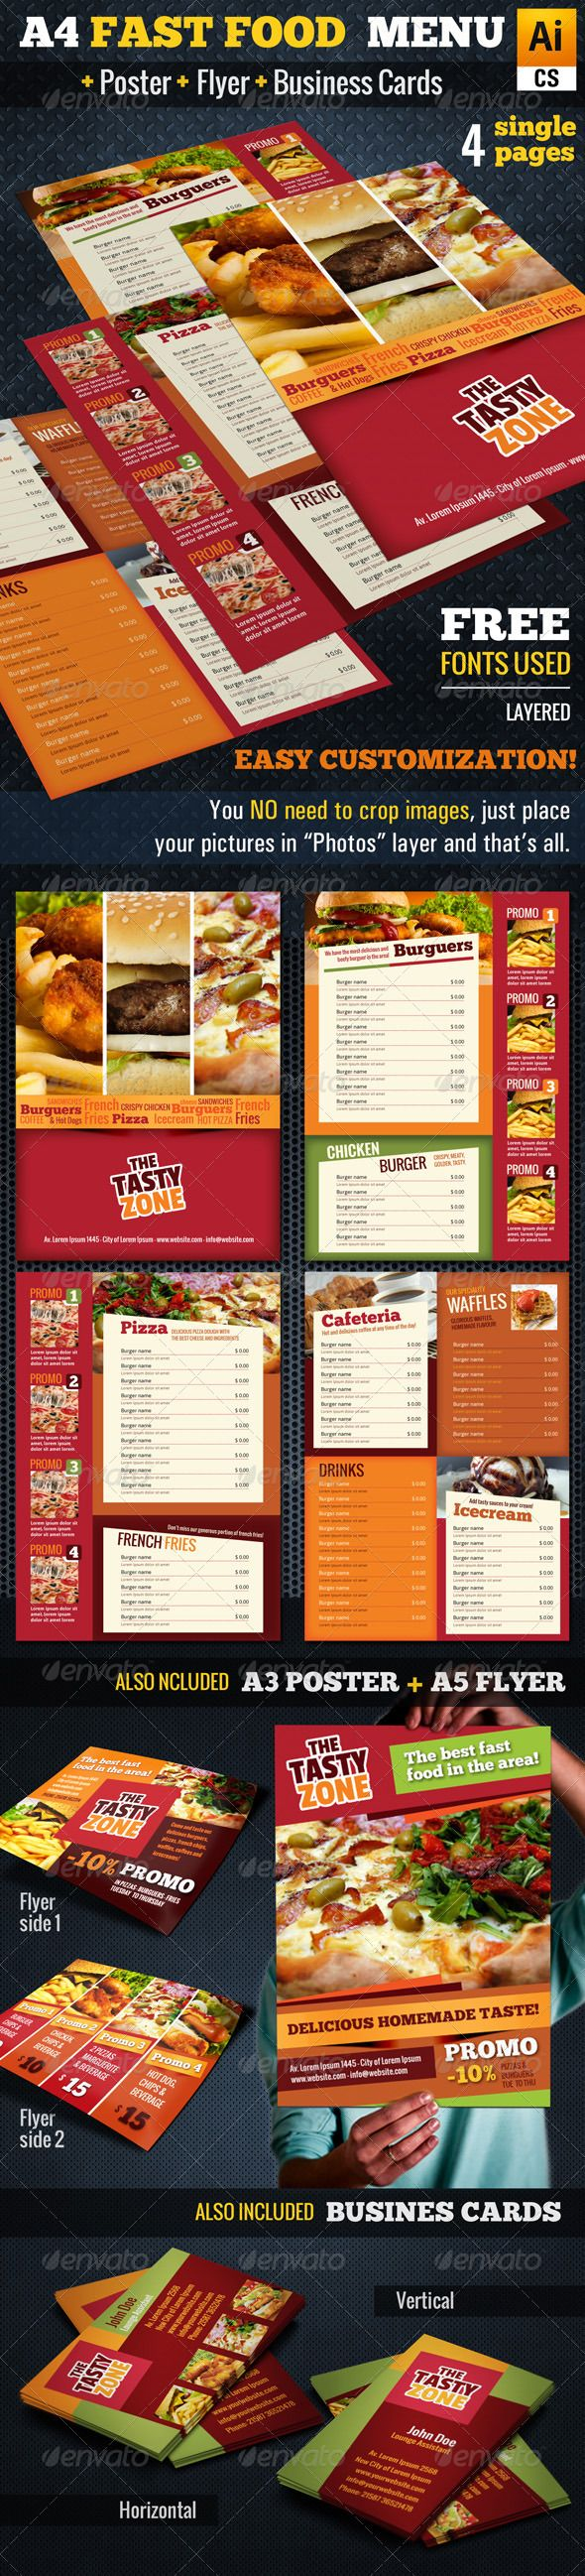 A4 Fast Food Menu + Poster + Flyer + Cards - Food Menus Print Templates